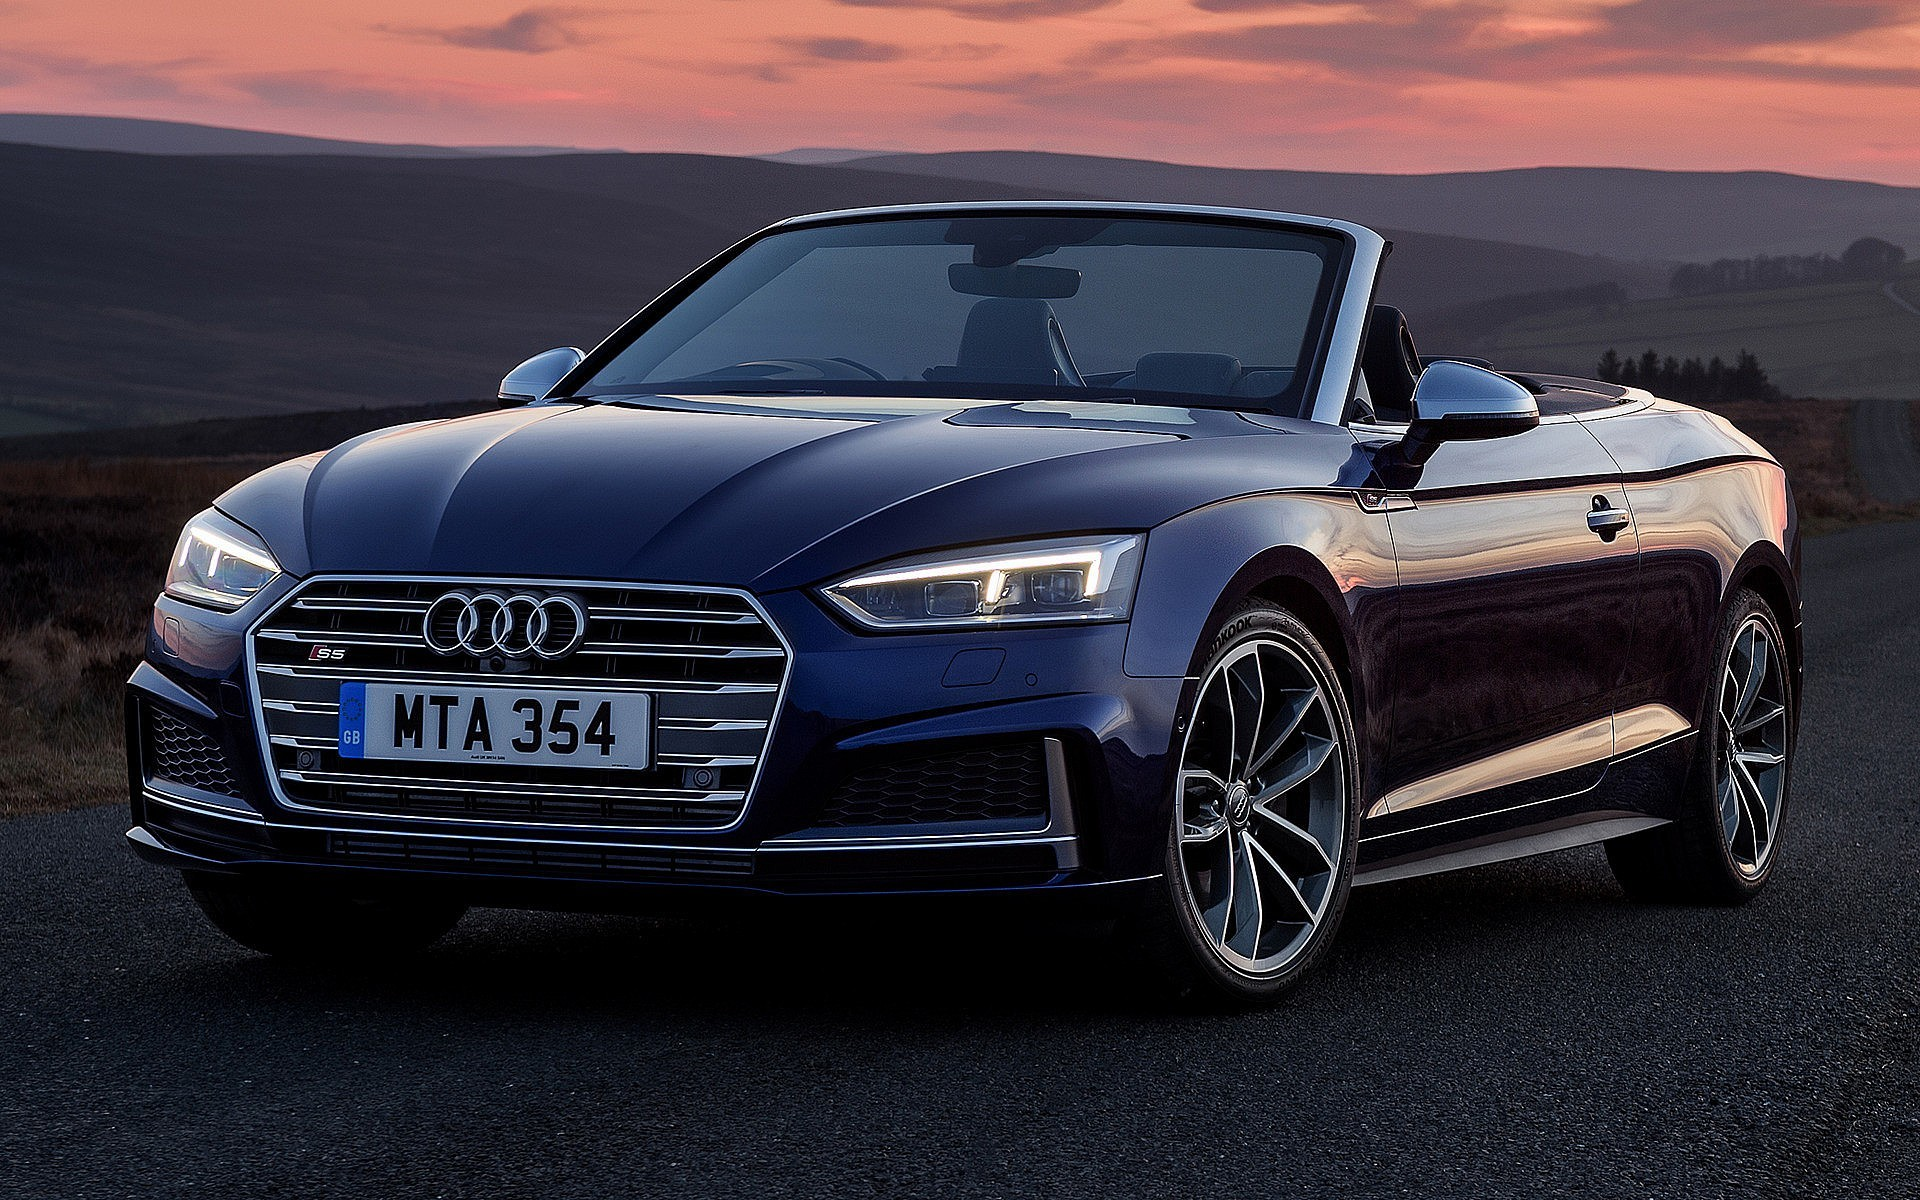 1920x1200 2017 Audi Tt Roadster S Linie Wettbewerb Auto Tapete S5 Widescreen